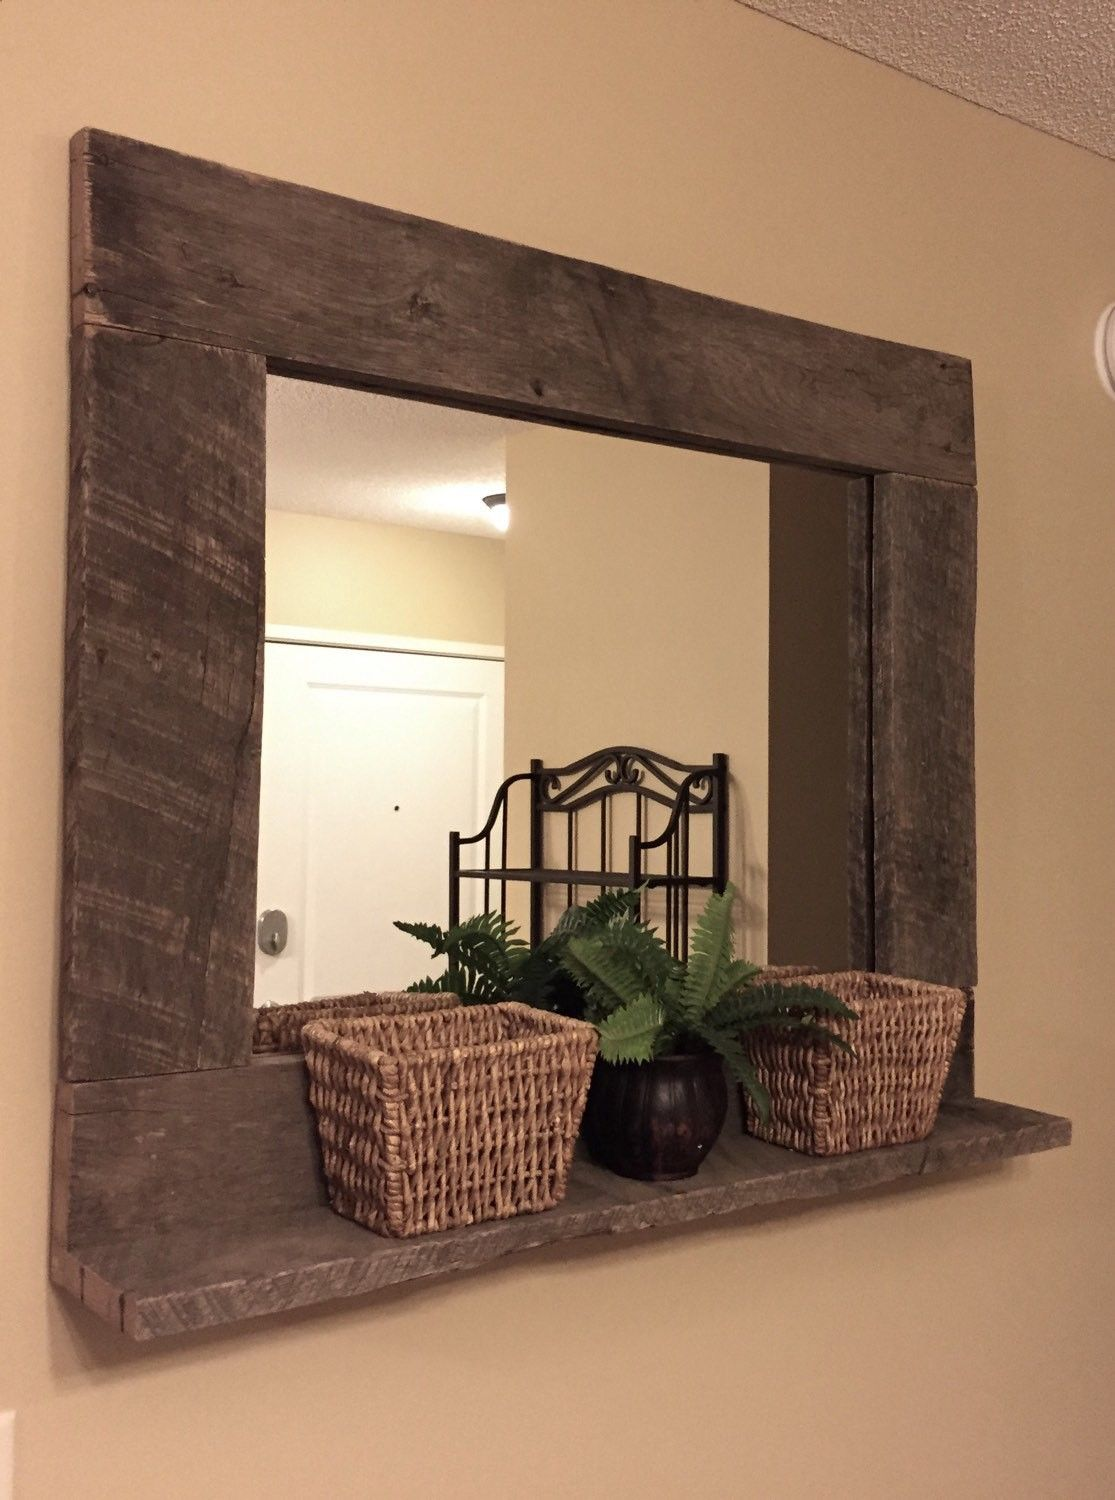 Rustic Wood Mirror Pallet Furniture Rustic Home Decor Large Wall Mirror Hanging Mirror With Shelf By Bandvrusticdes Diy Pallet Furniture Rustic Furniture Decor